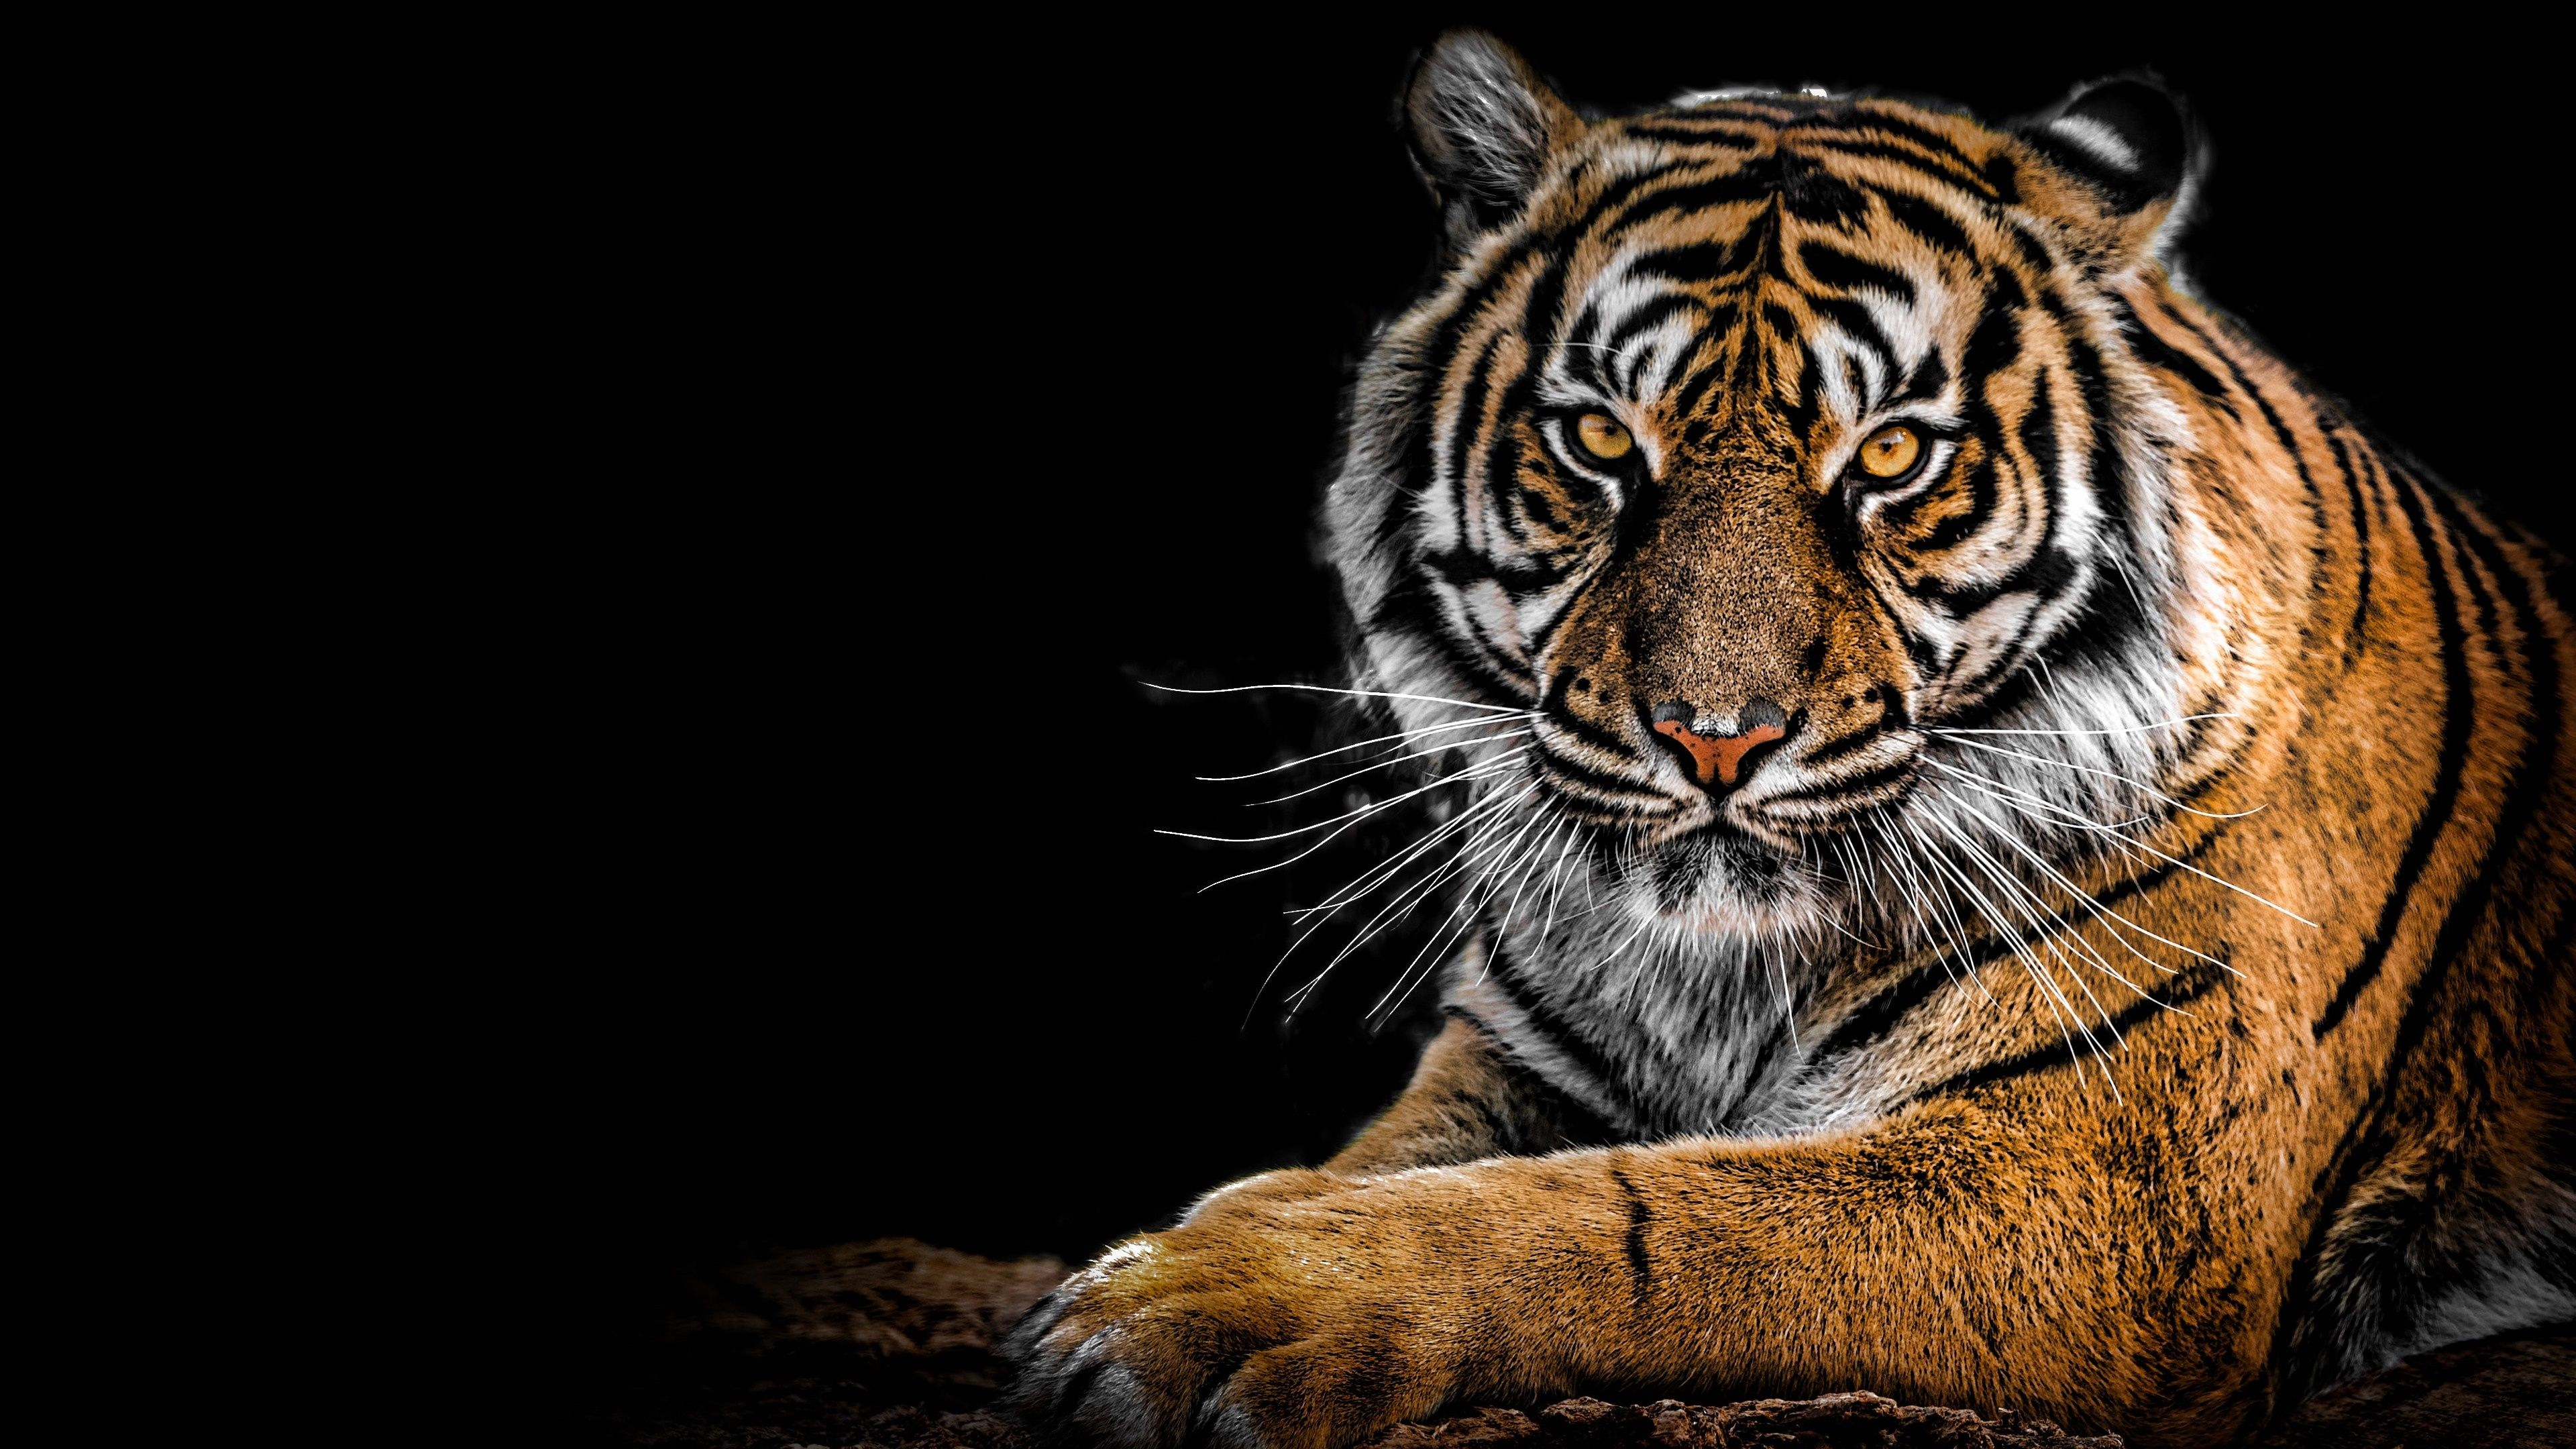 Tiger 4k Wallpapers Top Free Tiger 4k Backgrounds Wallpaperaccess